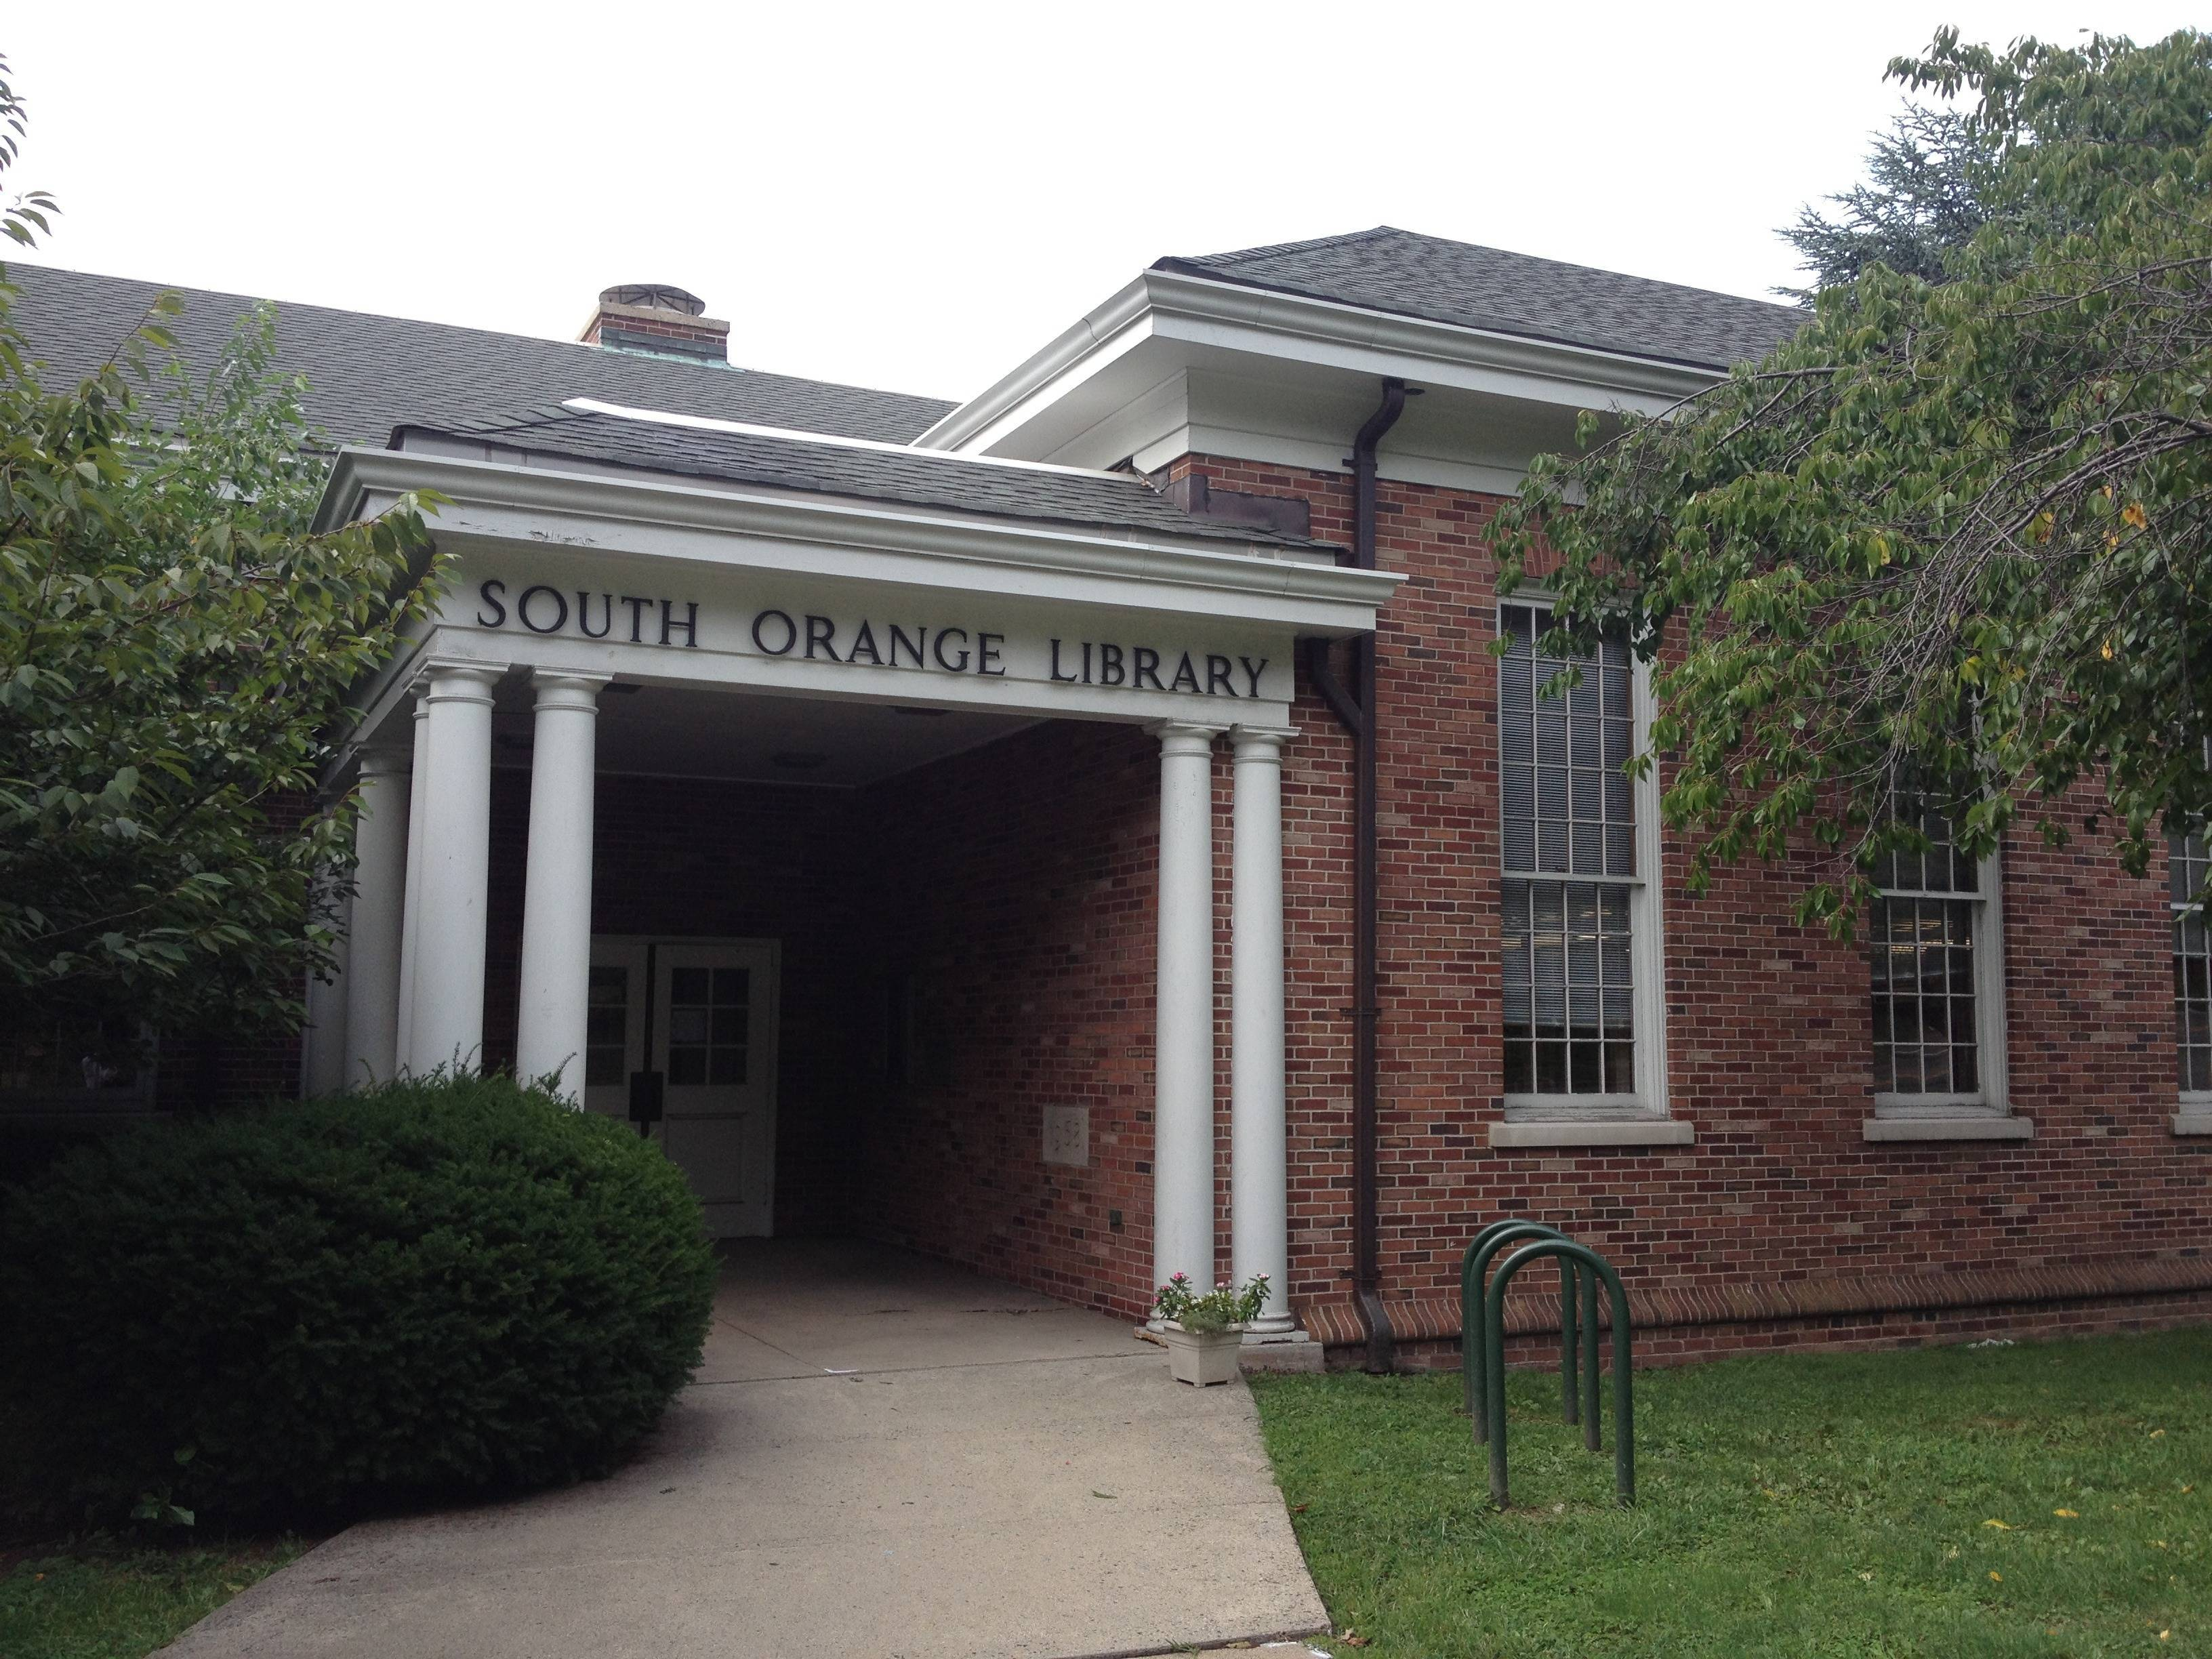 8d40e5d81a3baa298b65_South_Orange_Library.JPG